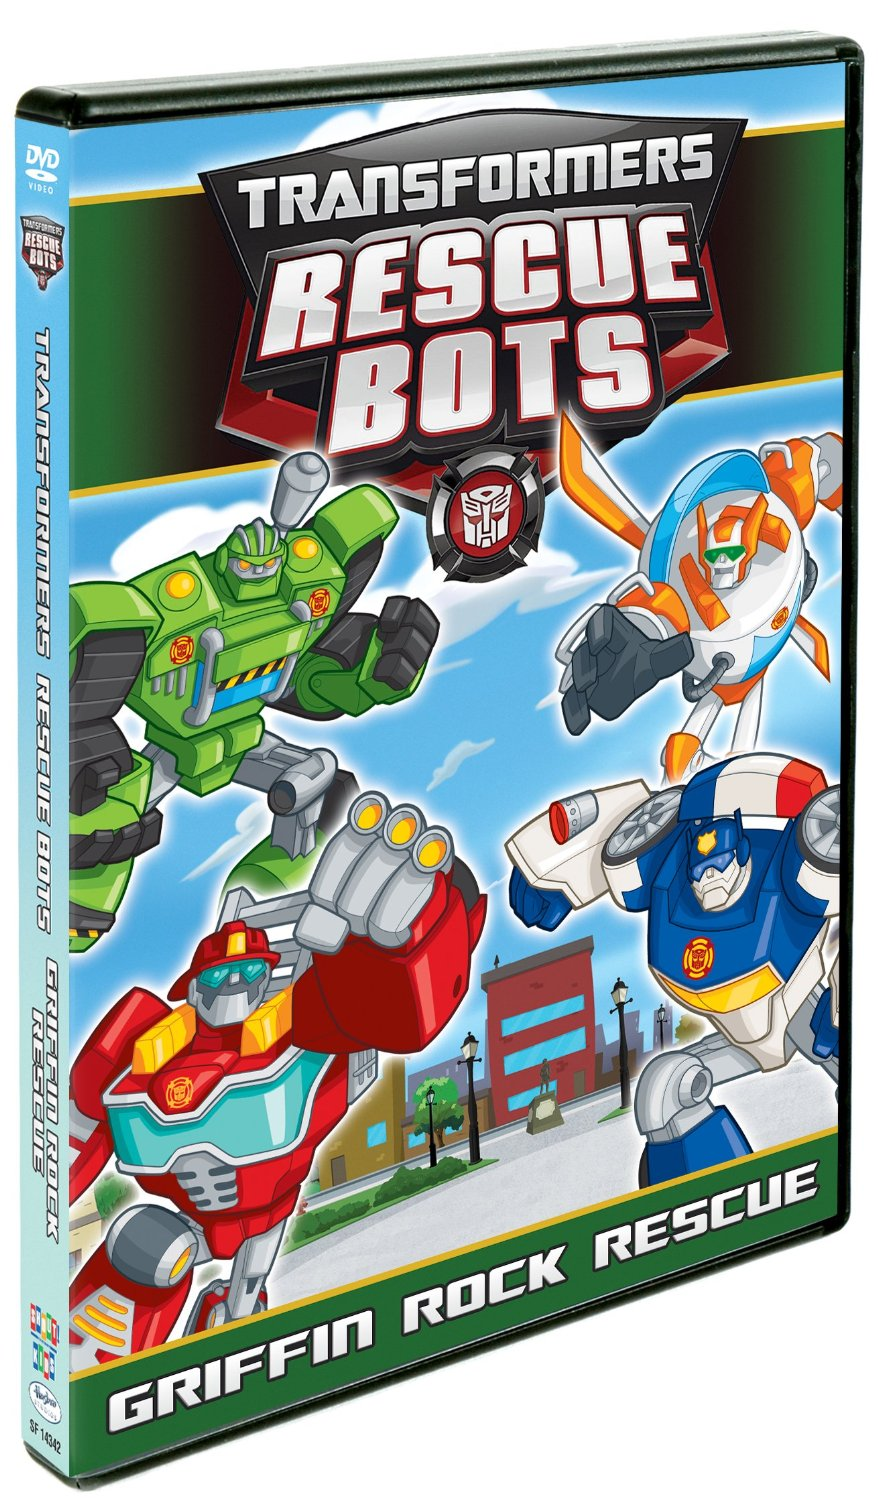 Re: Transformers Rescue Bots: Griffin Rock Rescue DVD Listed on Amazon